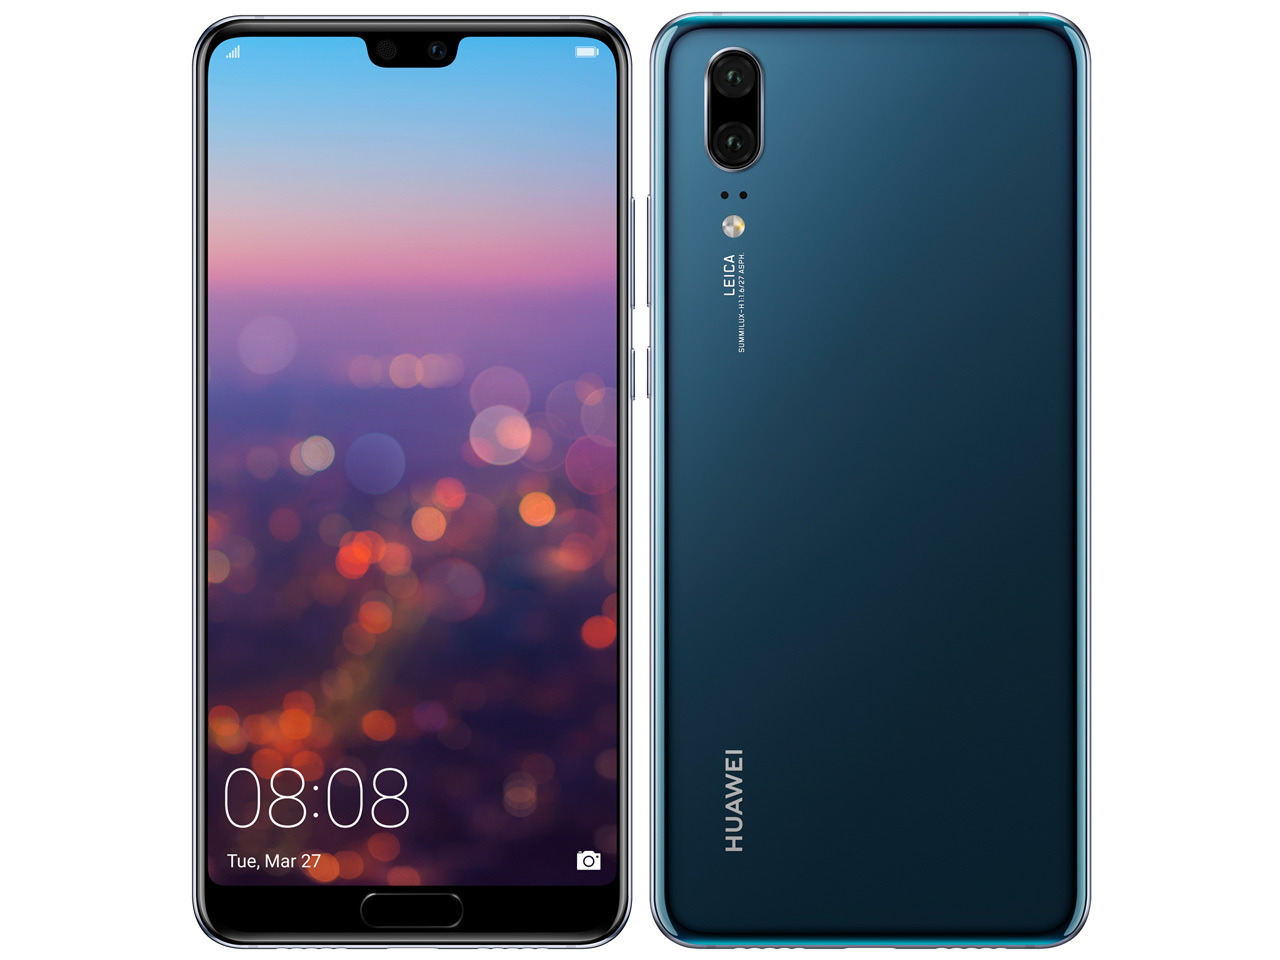 「新品 未使用品」Huawei simフリー P20 ブルー [EML-L29][128gb/4gb][simfree][モバイル]